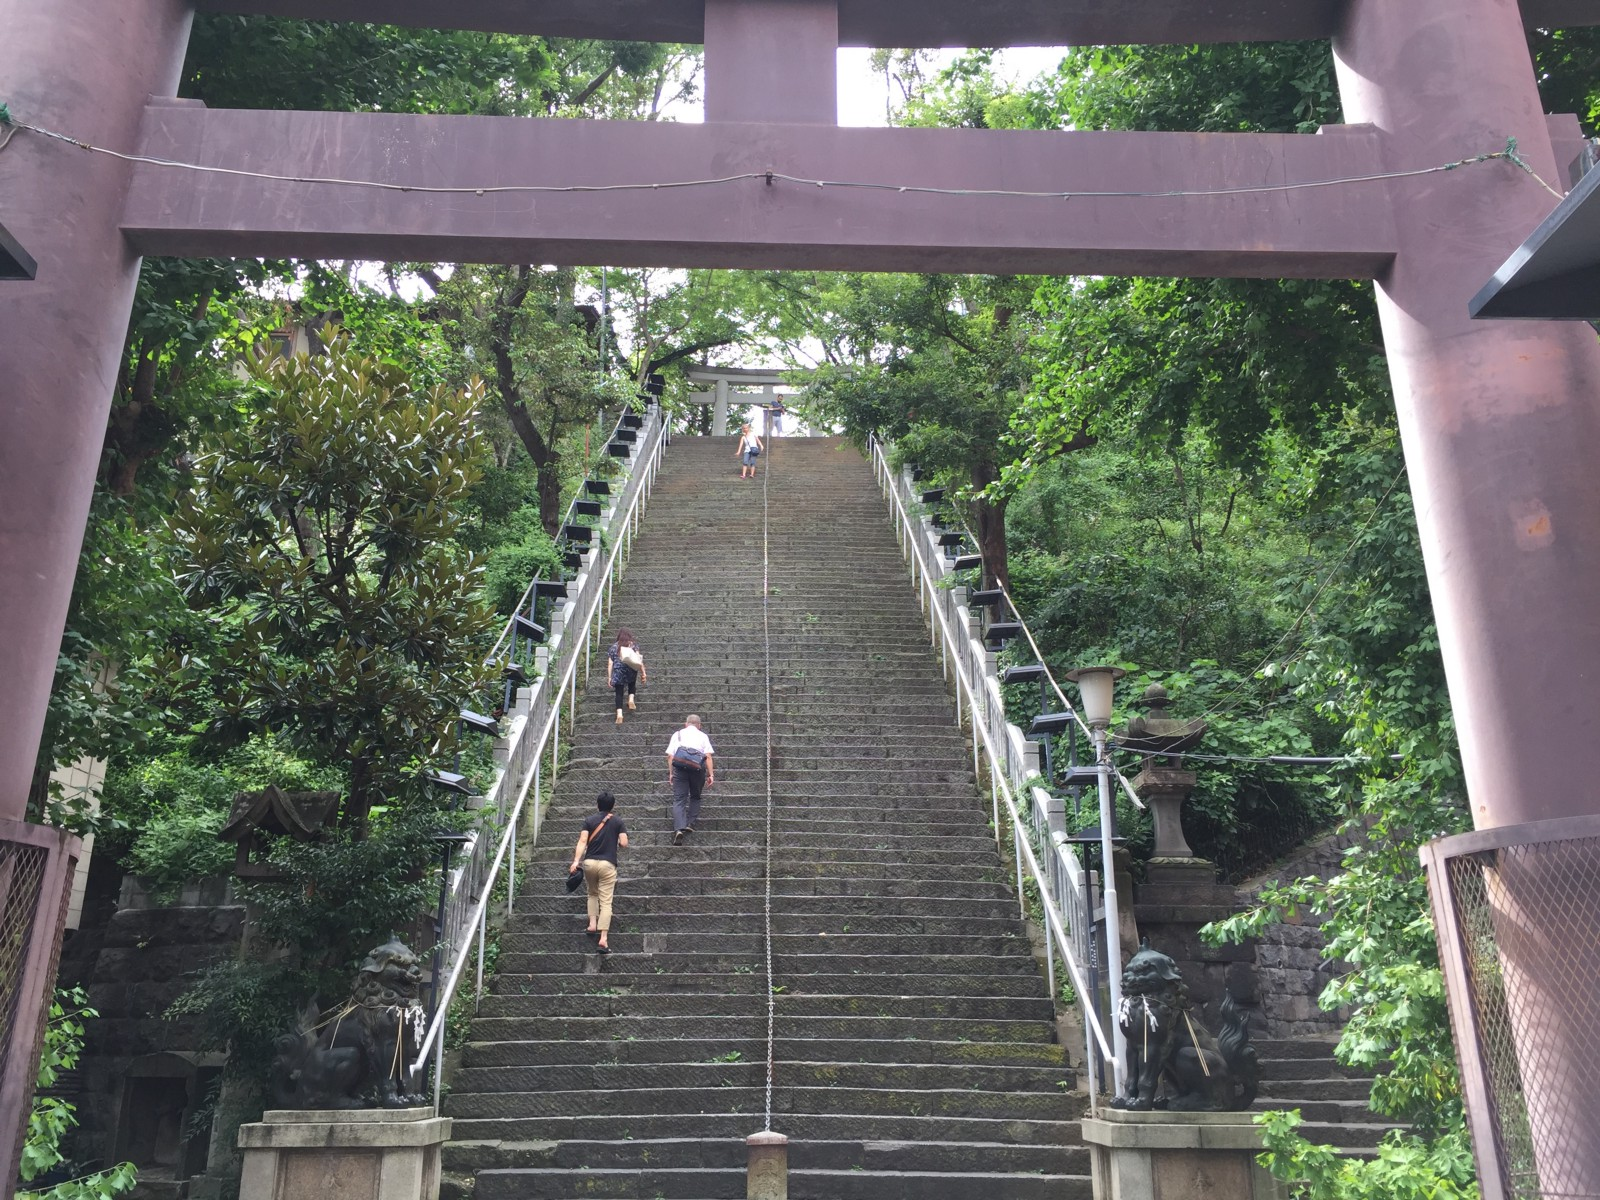 Atago Shrine: Climb the Long Stairs for Career Success in Tokyo